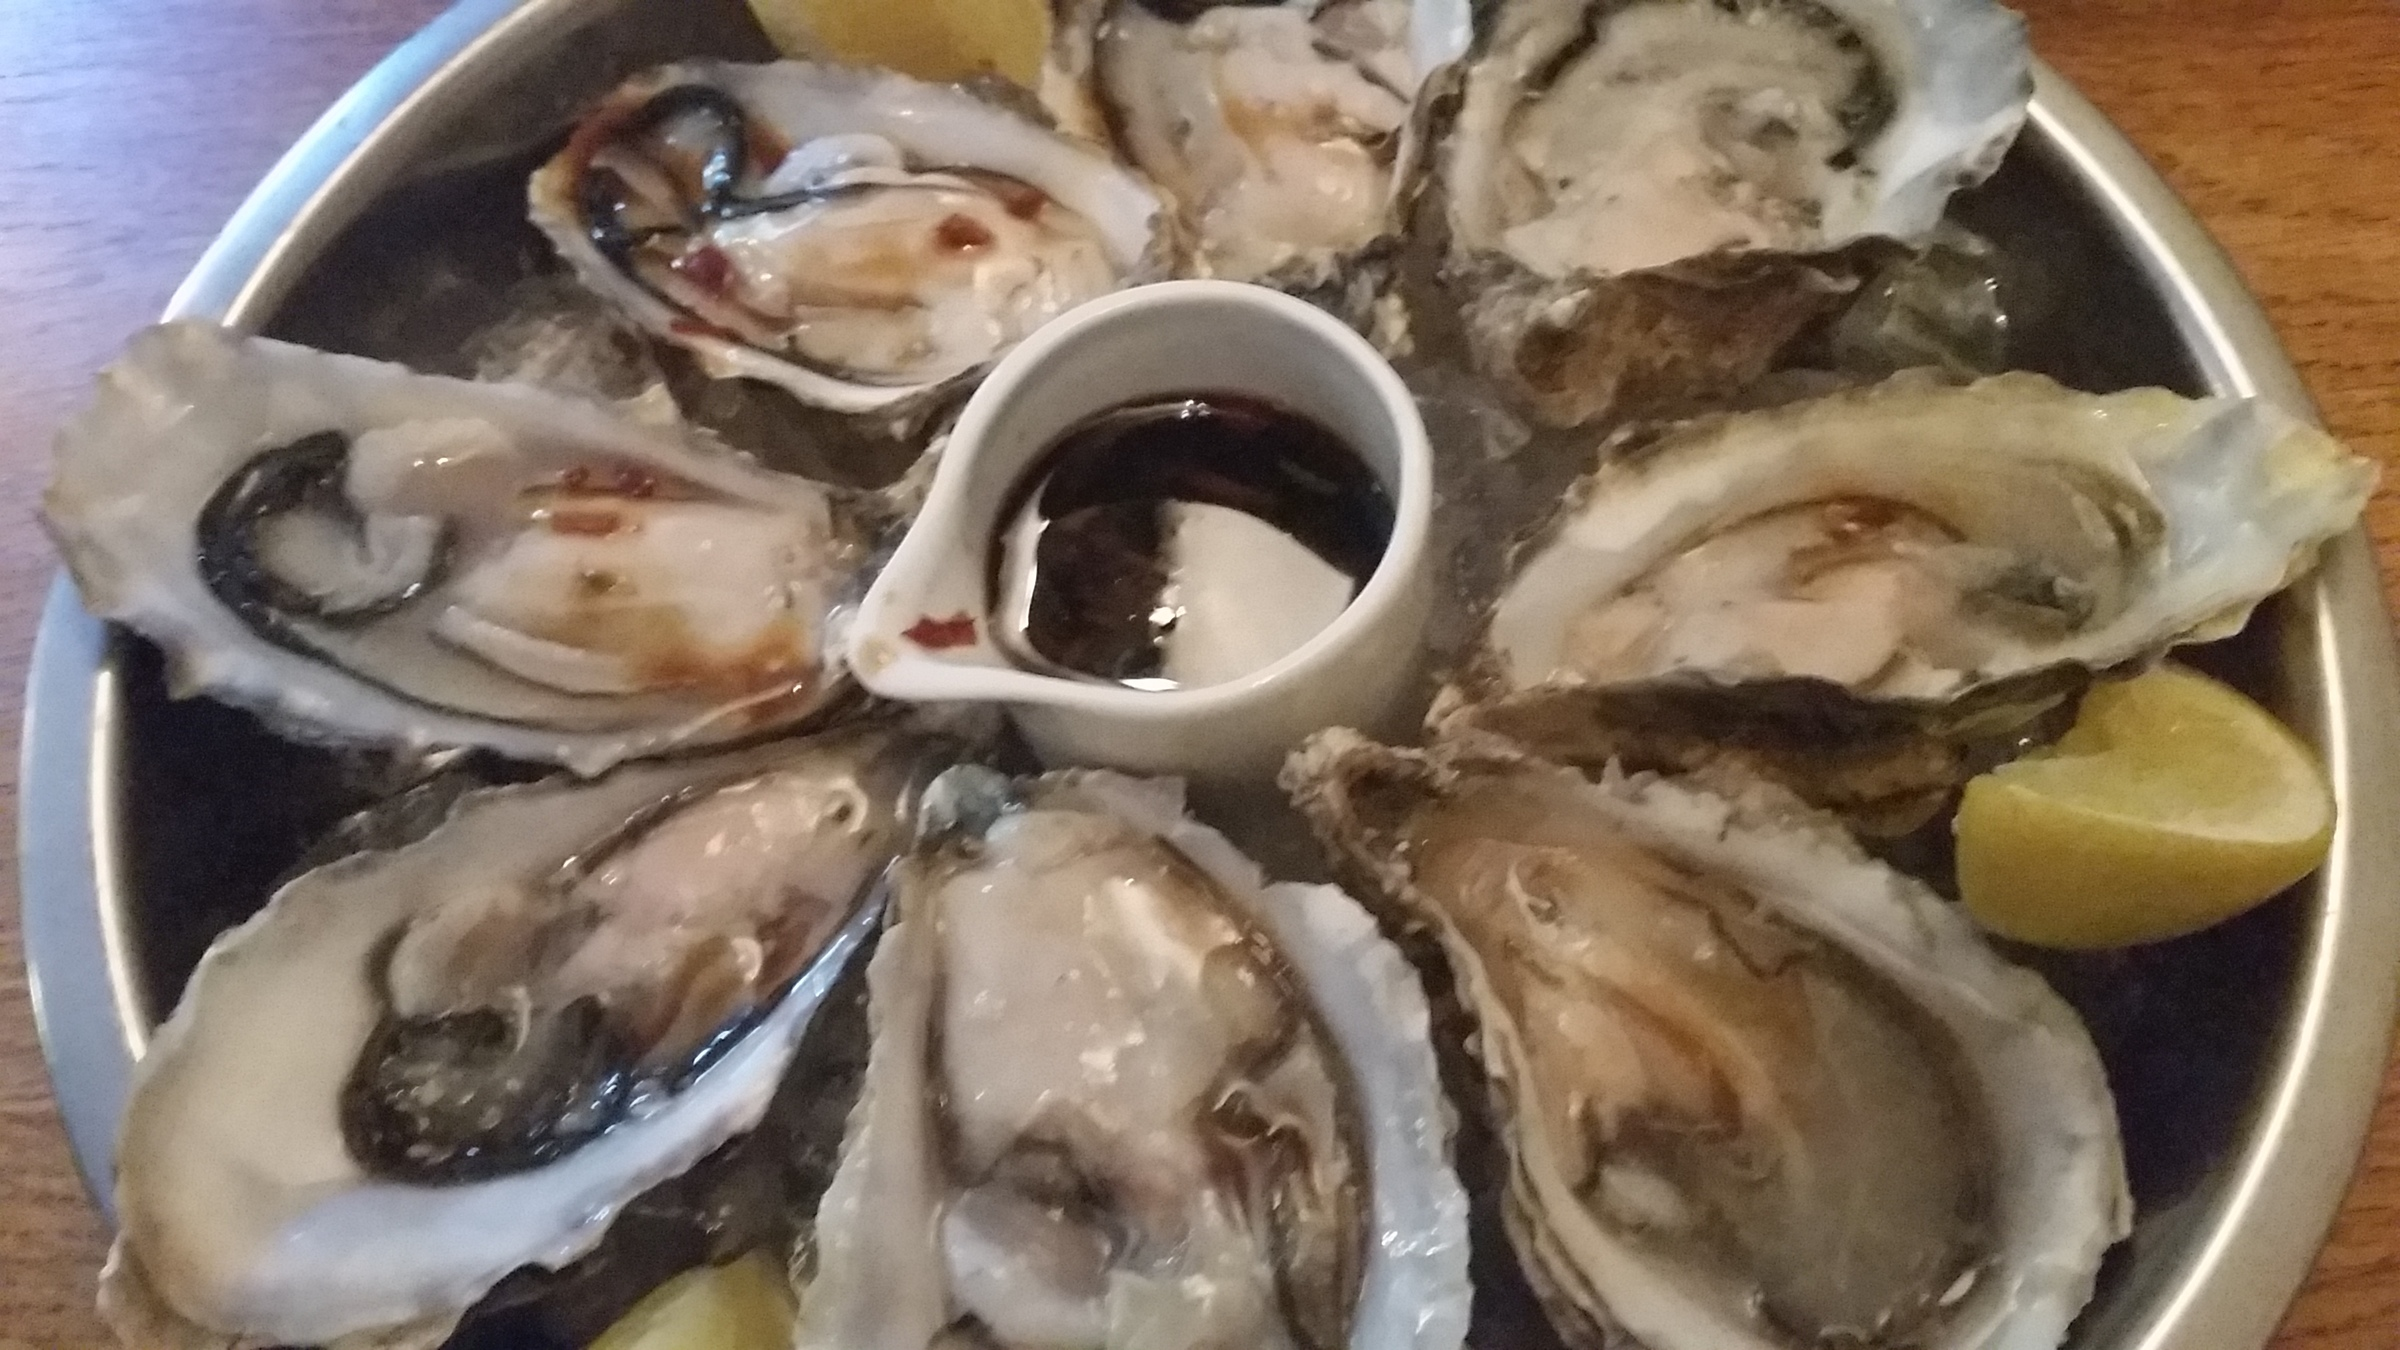 Christopher s Kitchen Valentine s Day is coming   Treat yourself! Oysters, Steak, Rocky Road!